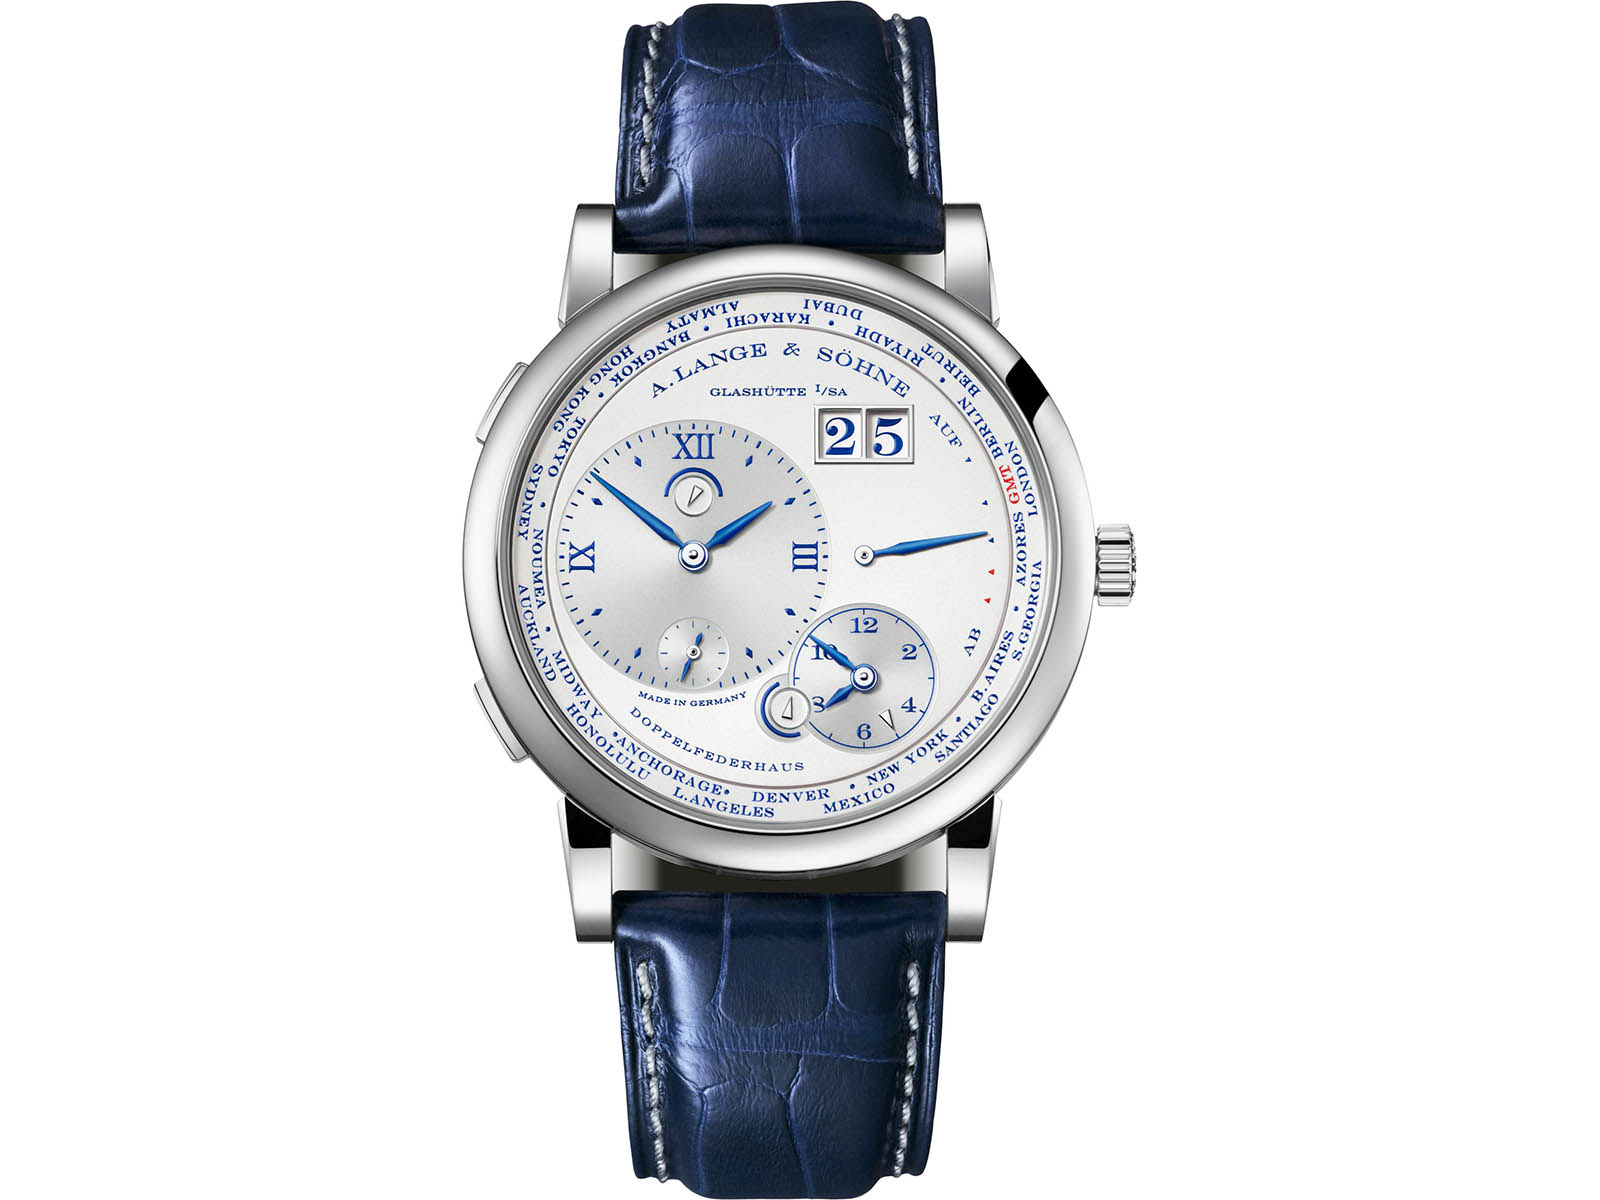 116-066-a-lange-sohne-lange-1-time-zone-25th-anniversary-6.jpg